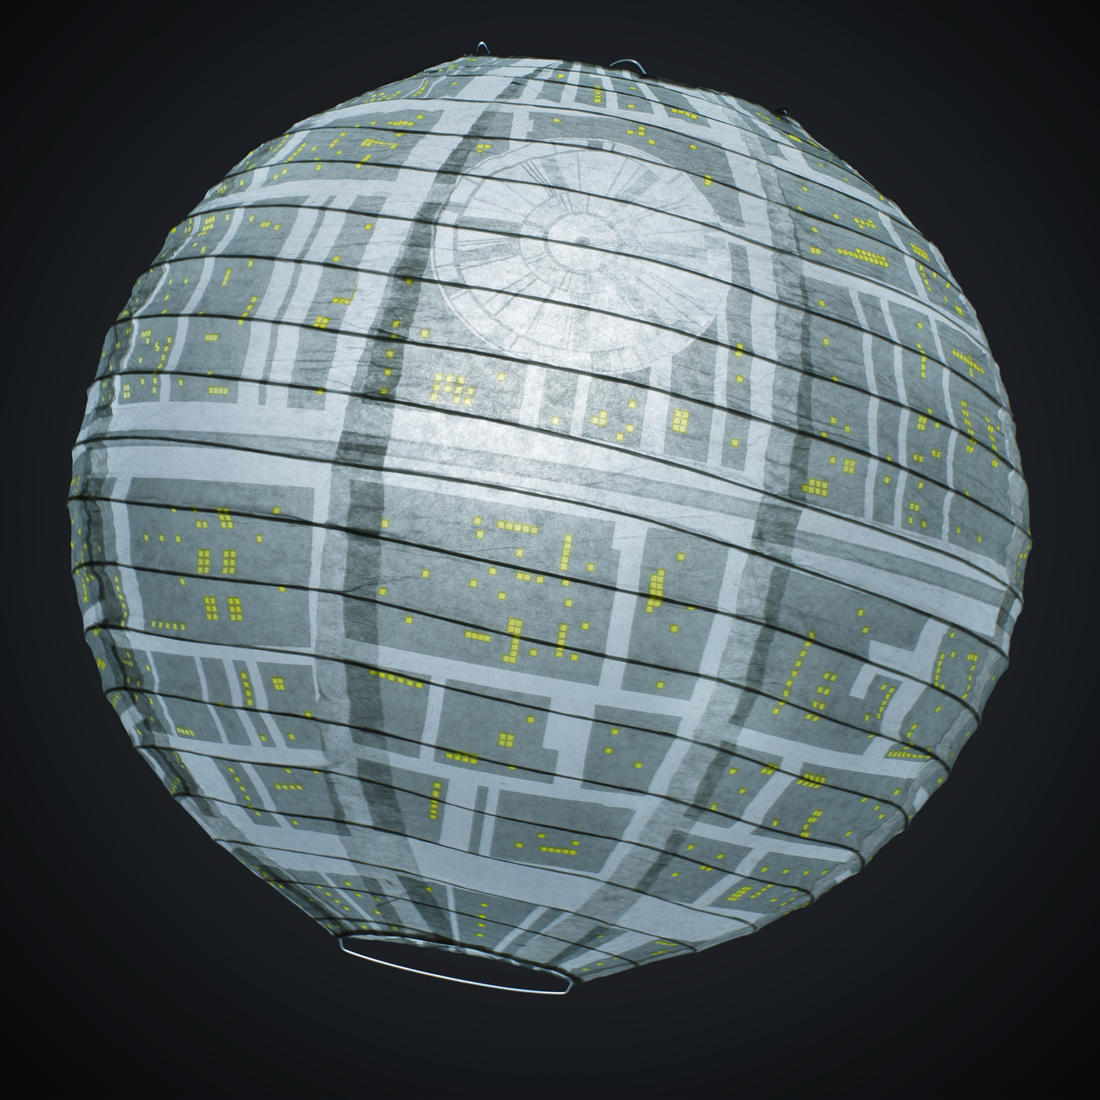 Star Wars Death Star Lamp Shade | getDigital